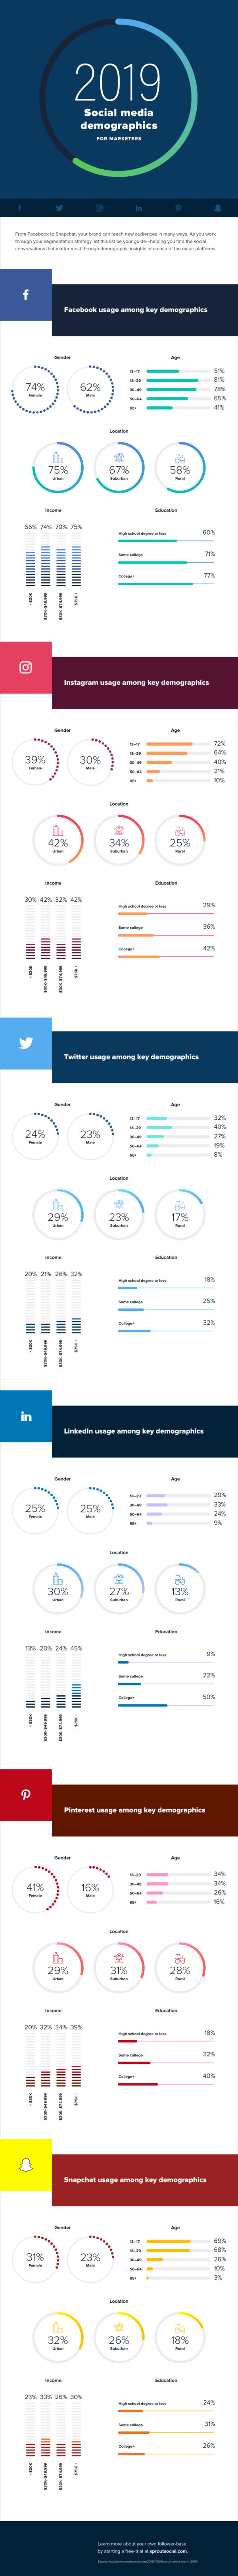 2019 Social Media Network Demographics Infographic